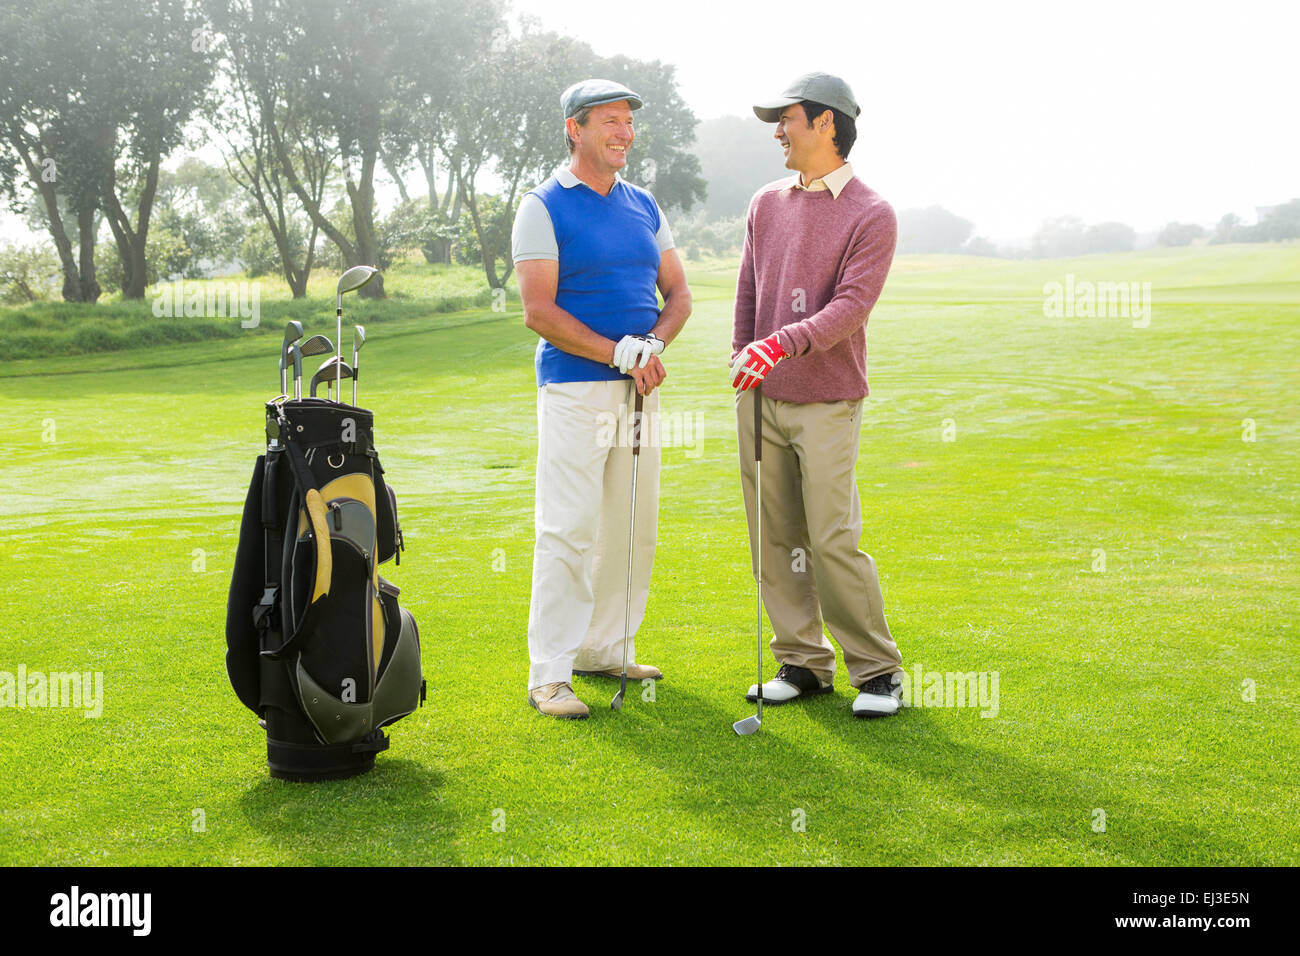 Golfing friends holding clubs - Stock Image